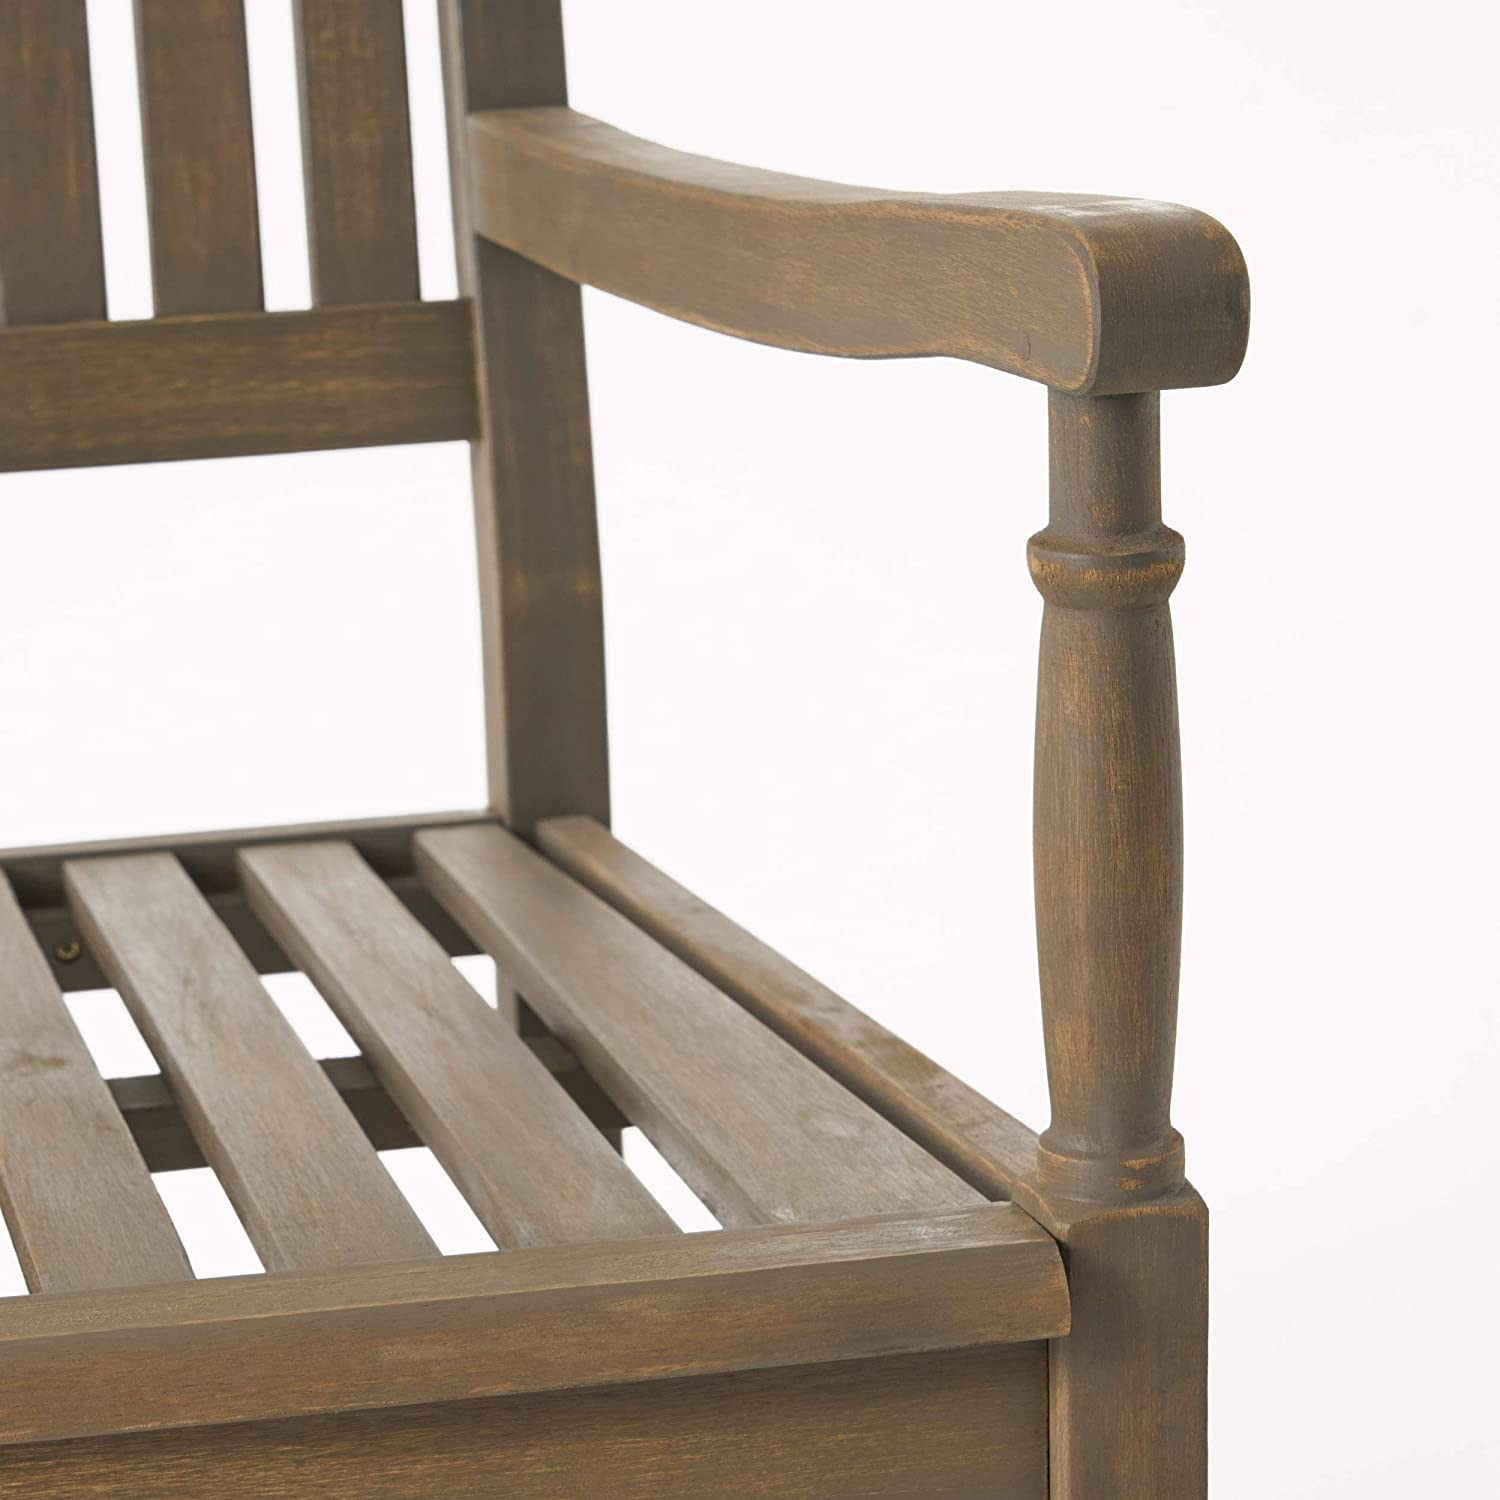 Gray Great Deal Furniture Myrna Outdoor Acacia Wood Rocking Chair